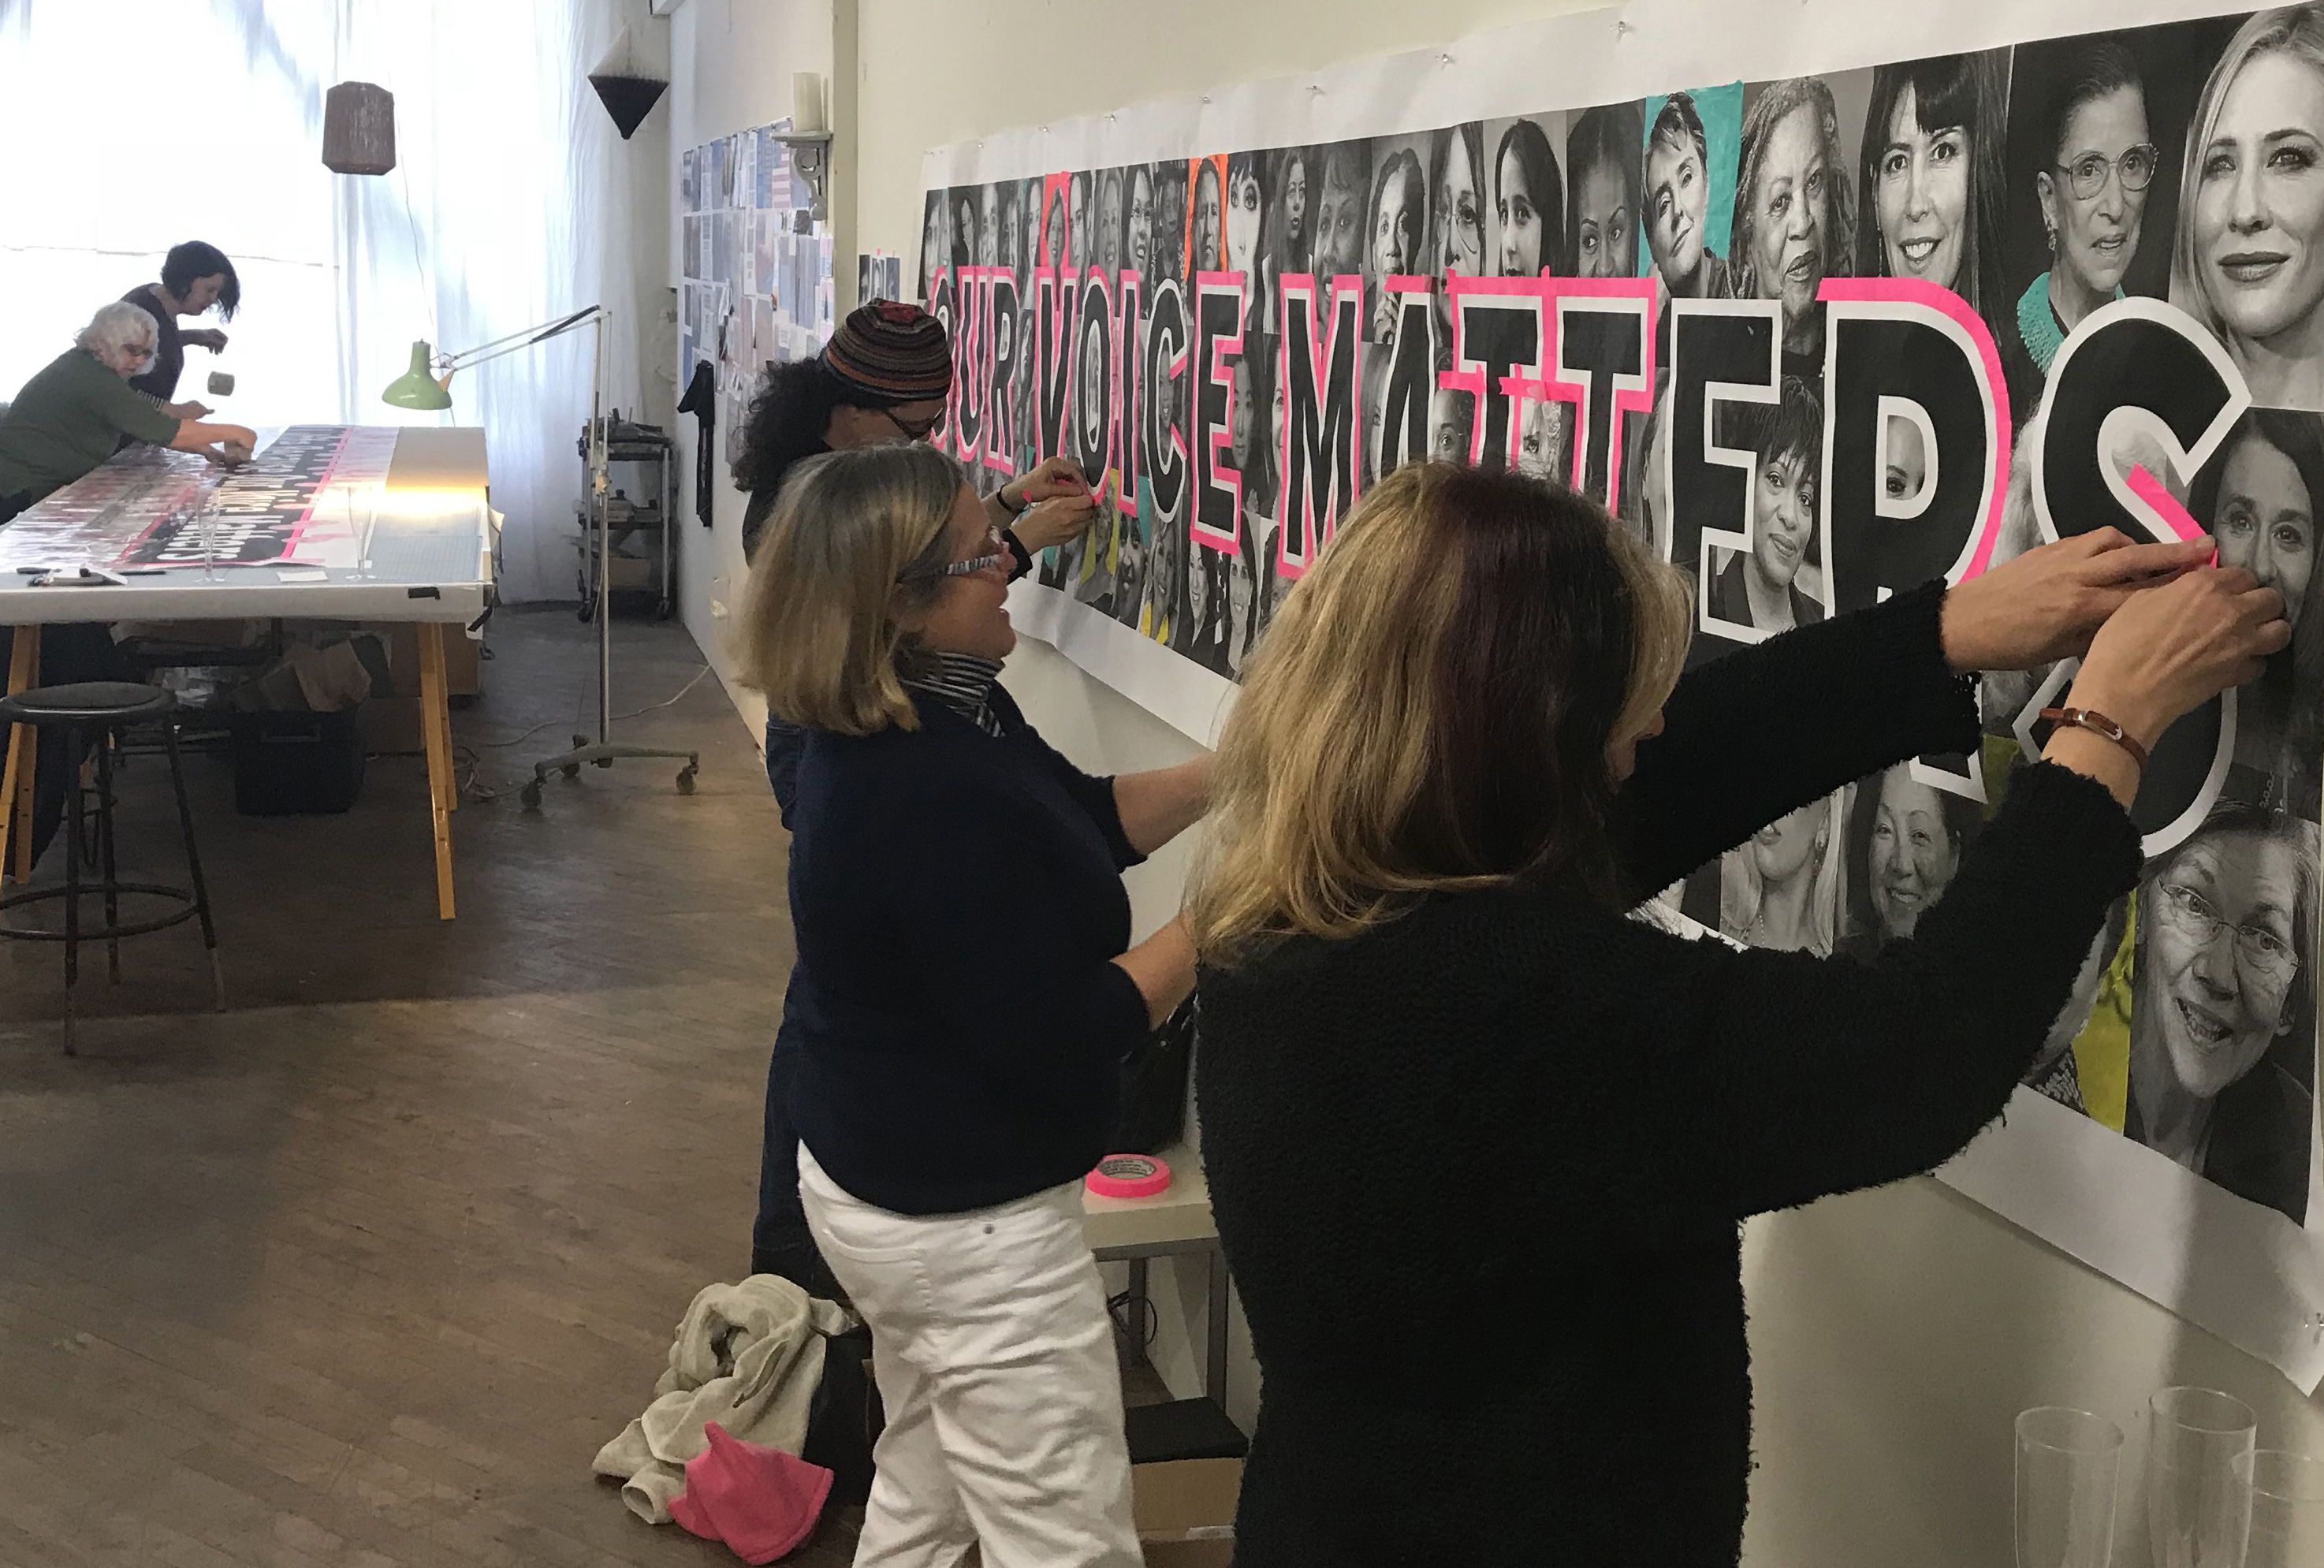 Volunteers outline bold letters in pink tape to increase visibility for the march.